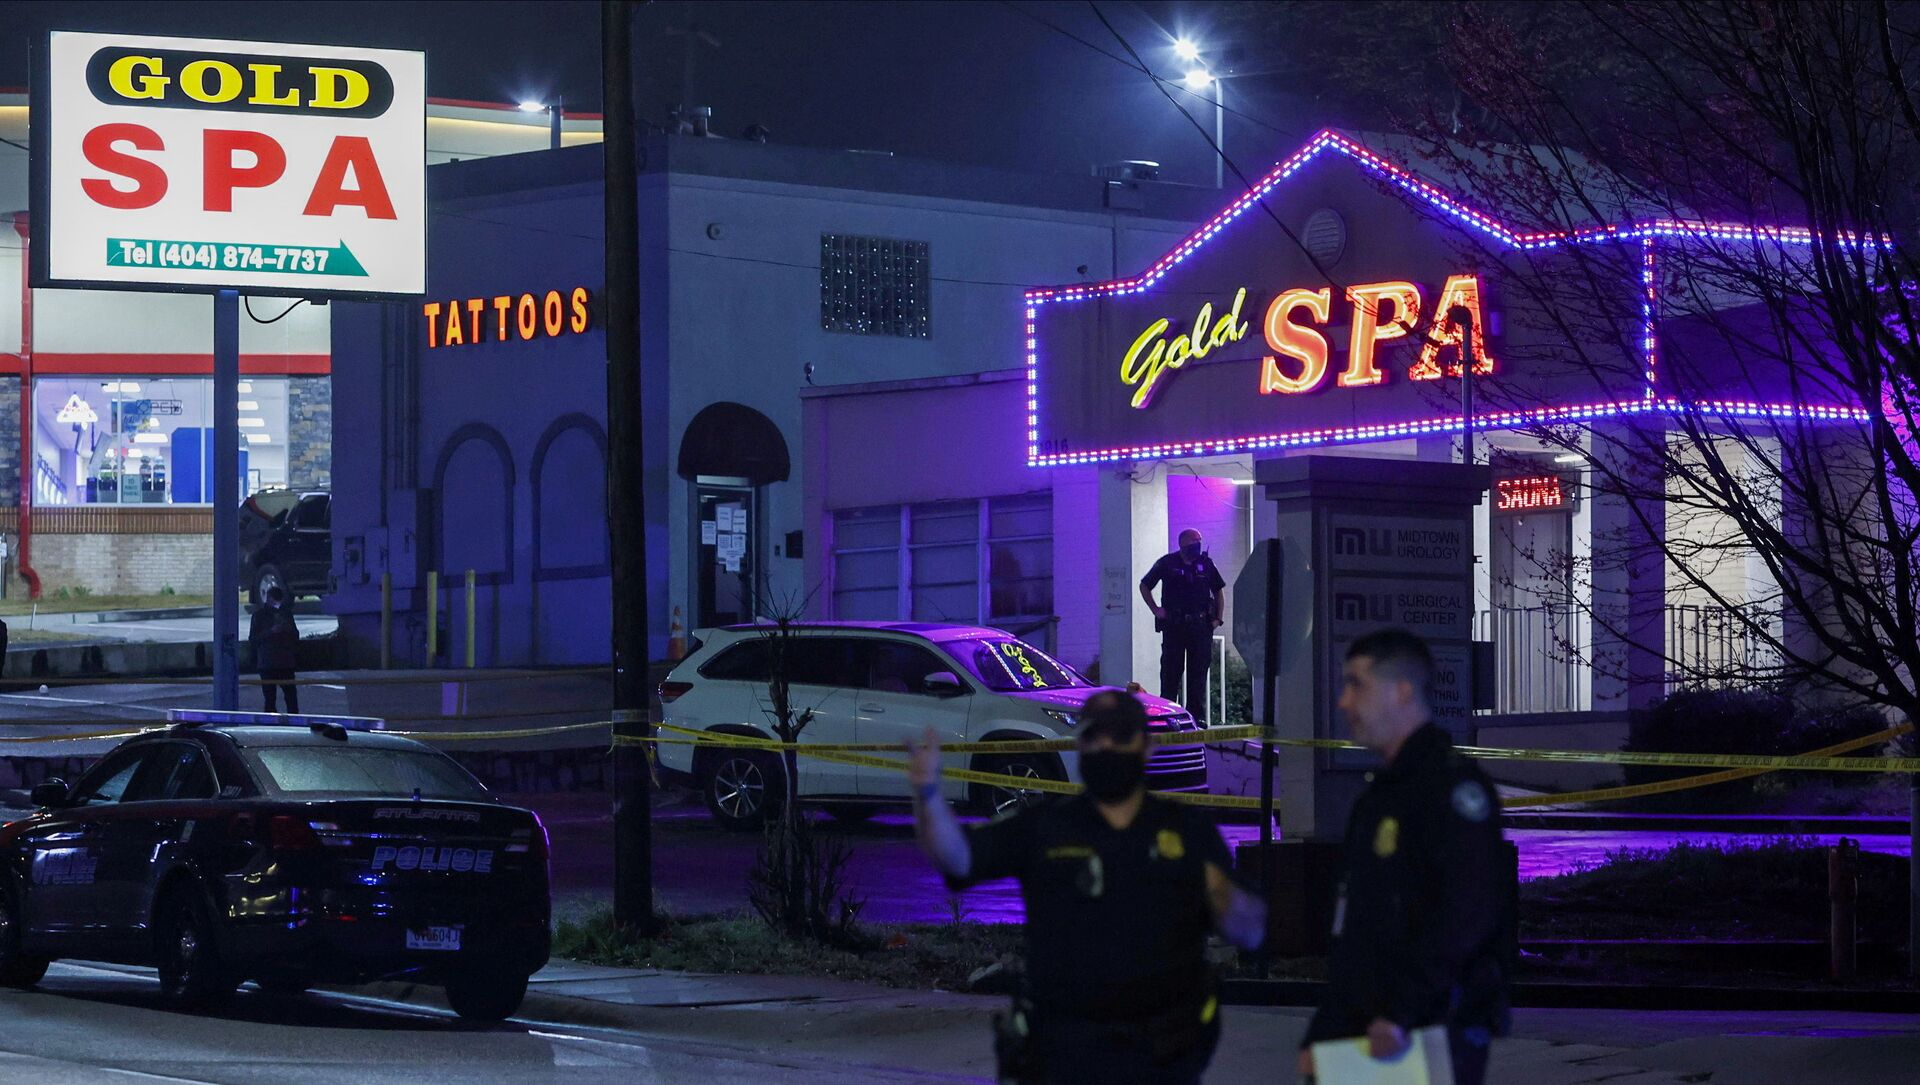 City of Atlanta police officers are seen outside of Gold Spa after deadly shootings at a massage parlor and two day spas in the Atlanta area, in Atlanta, Georgia, U.S. March 16, 2021. REUTERS/Chris Aluka Berry   - Sputnik International, 1920, 27.07.2021